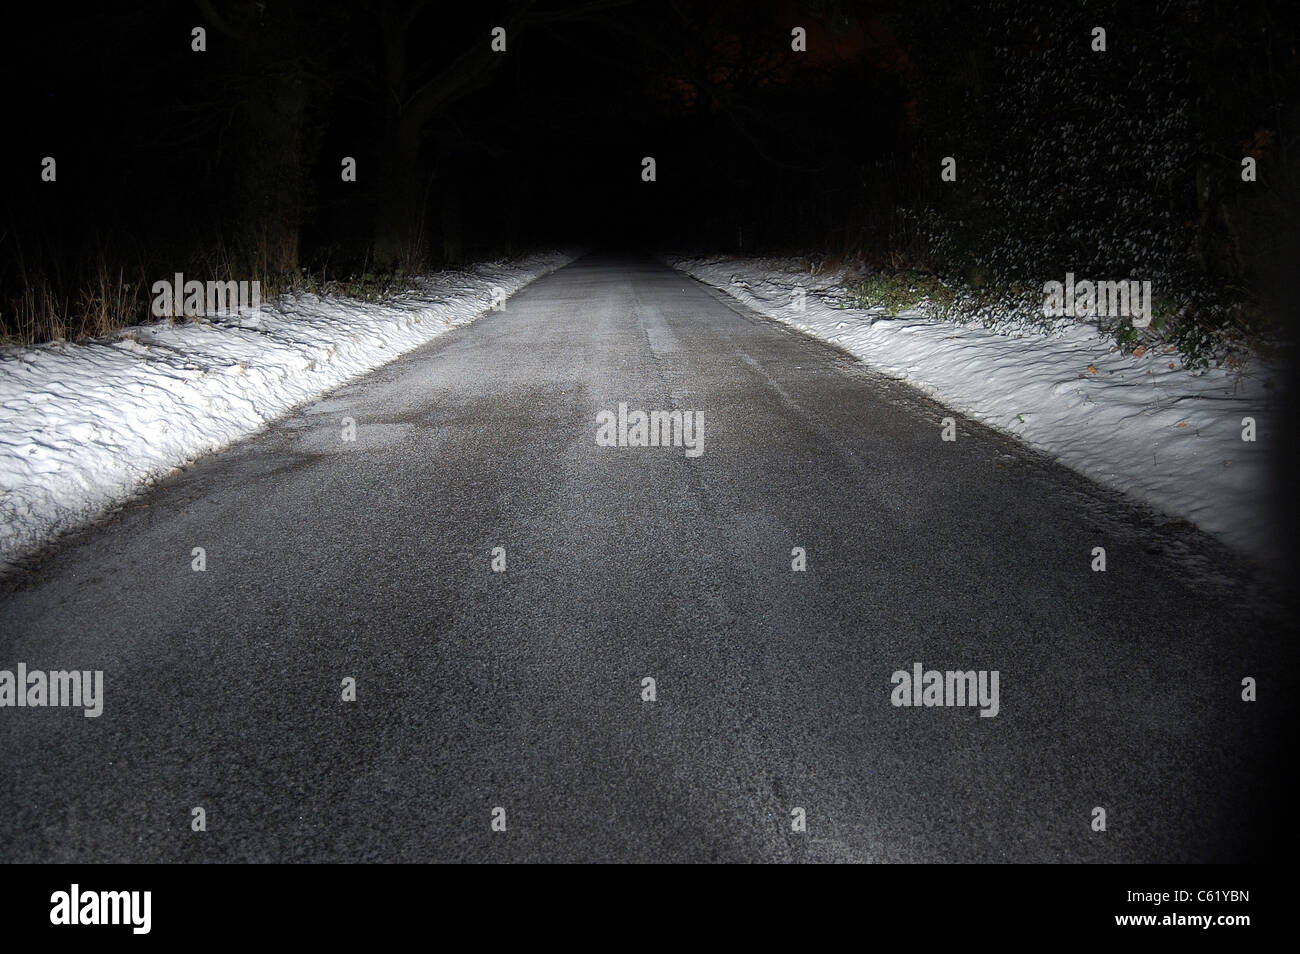 Snowy car lit road - Stock Image